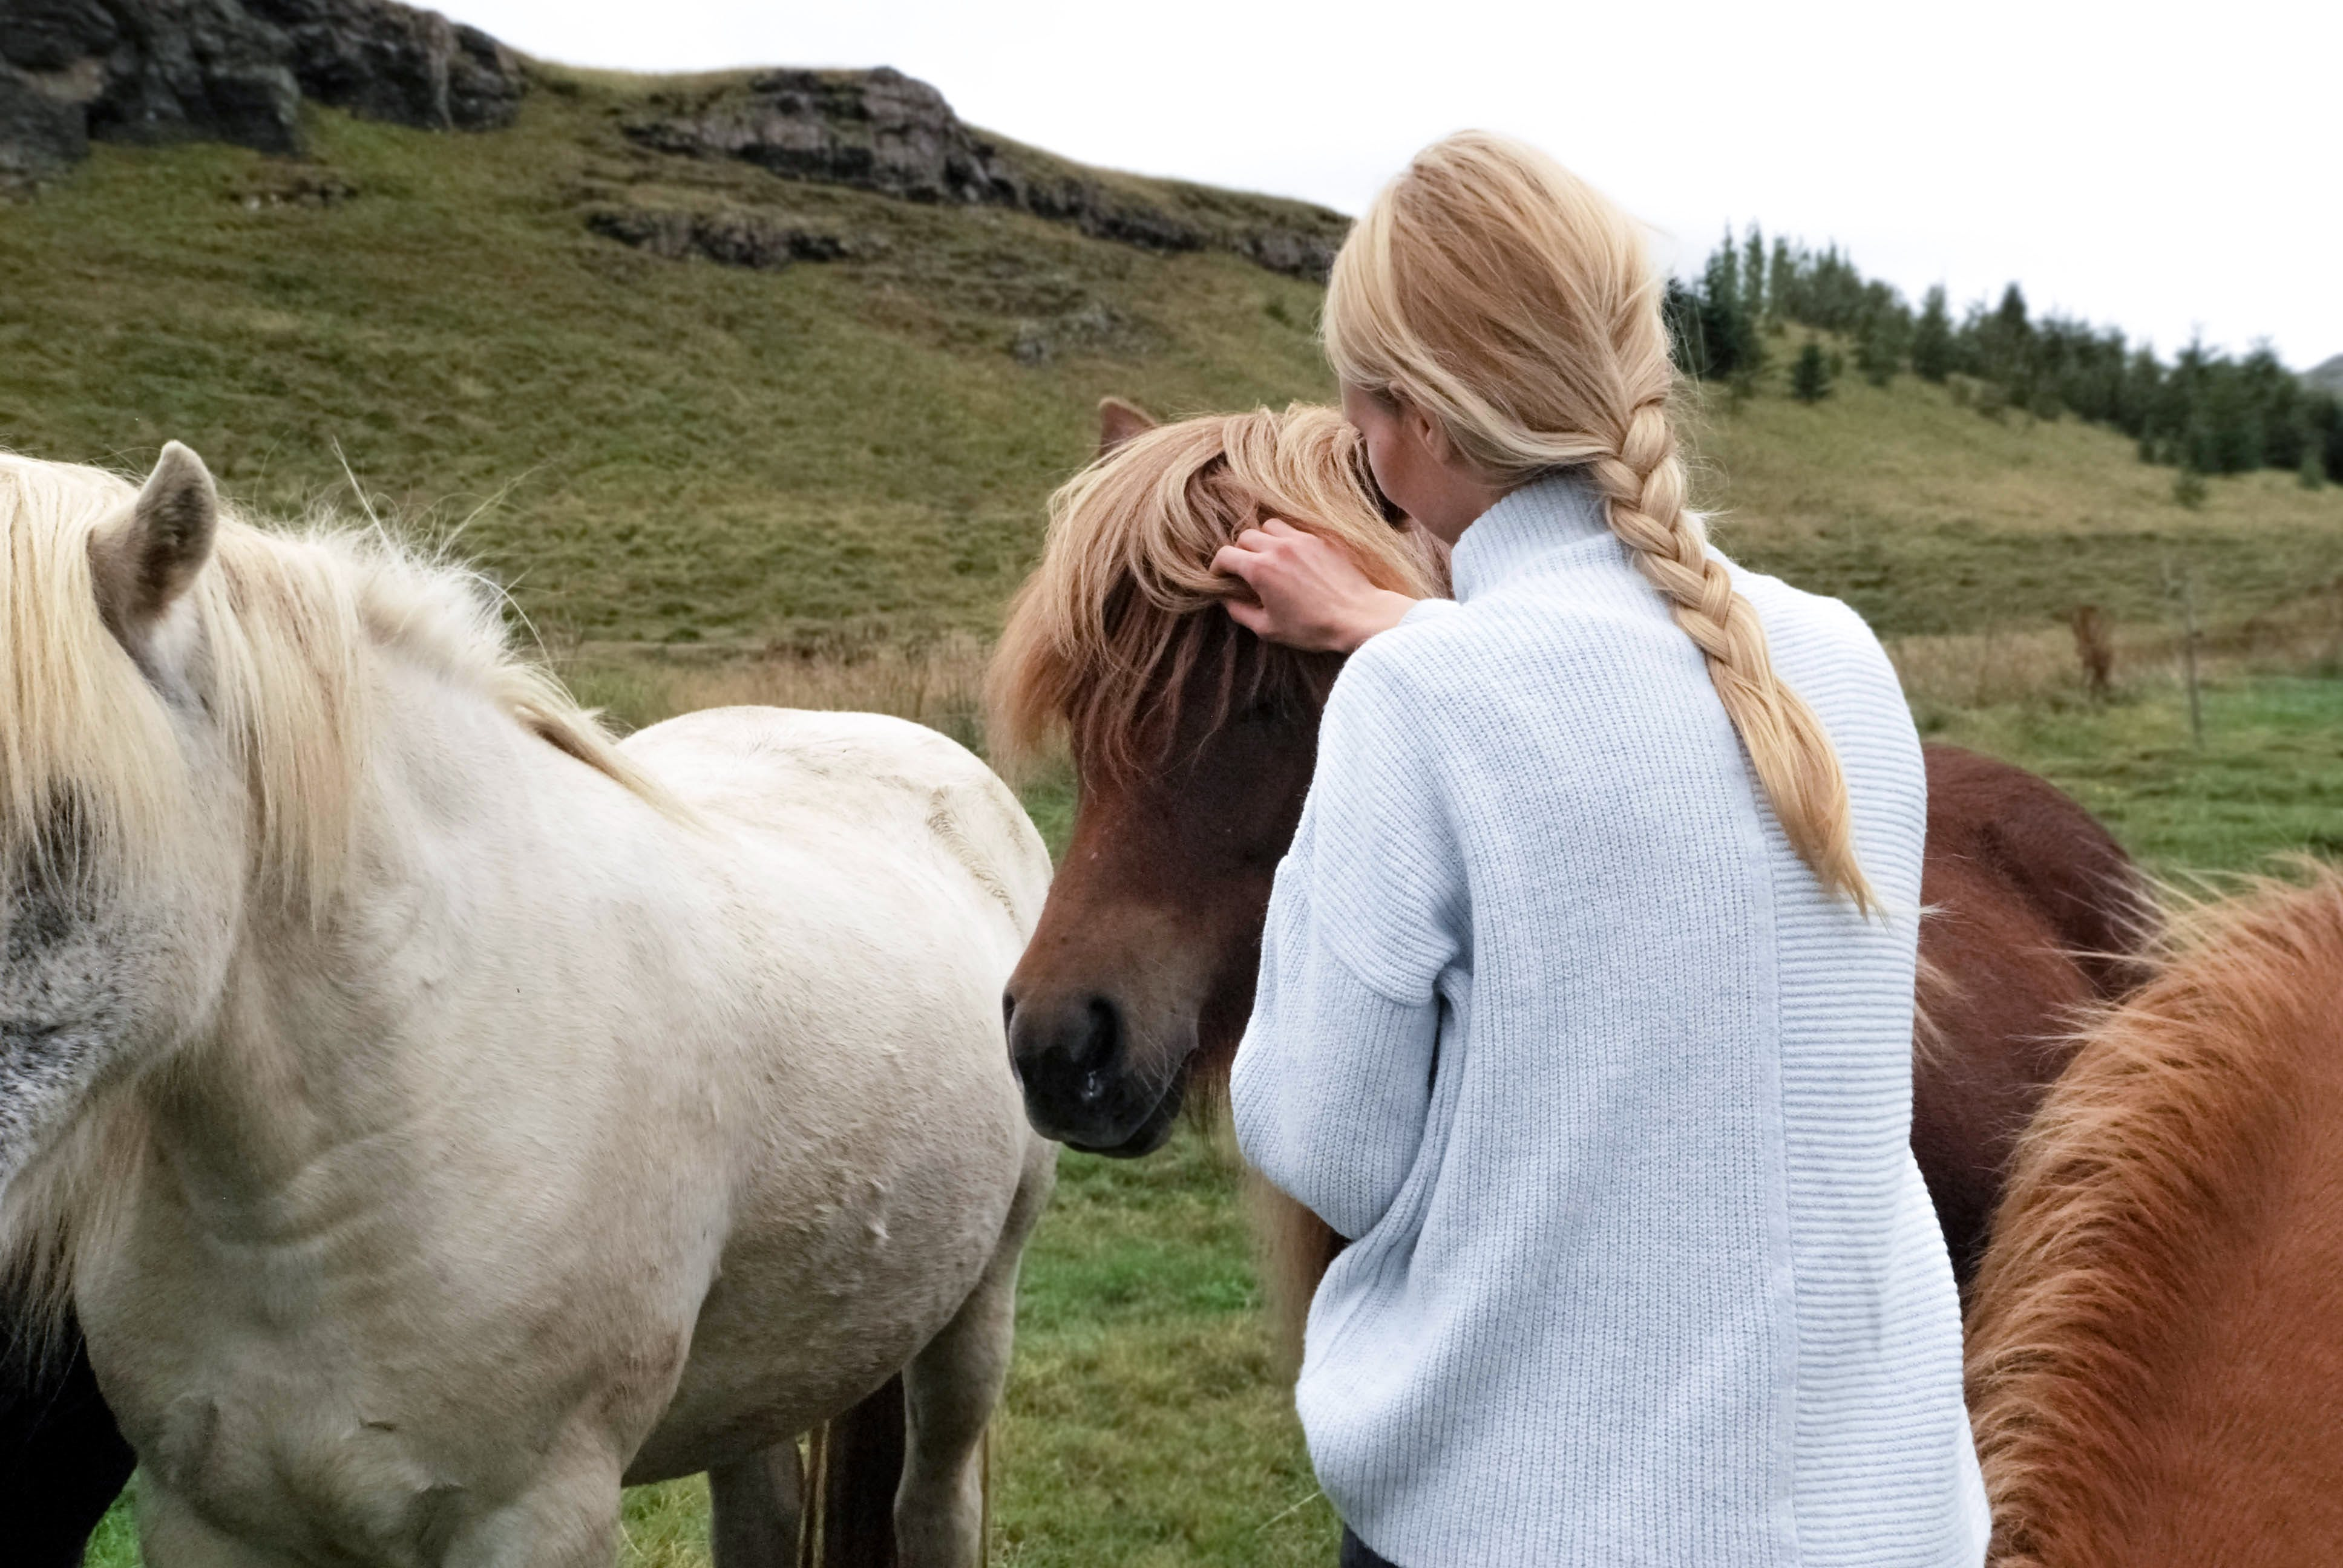 Woman Touching Horse